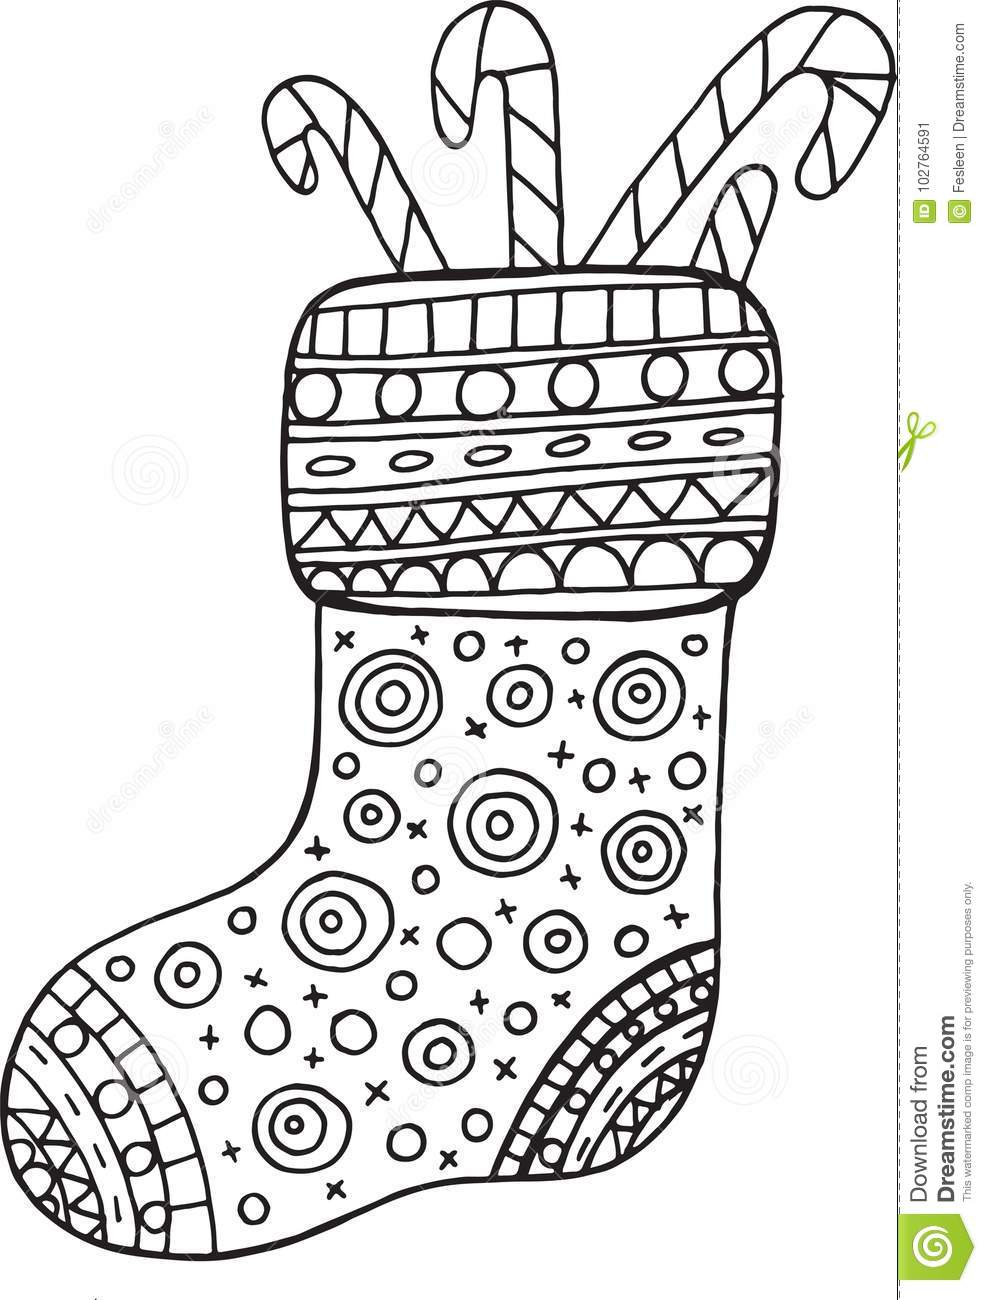 Christmas Boot Coloring Page For Adults And Kids Vector Stock